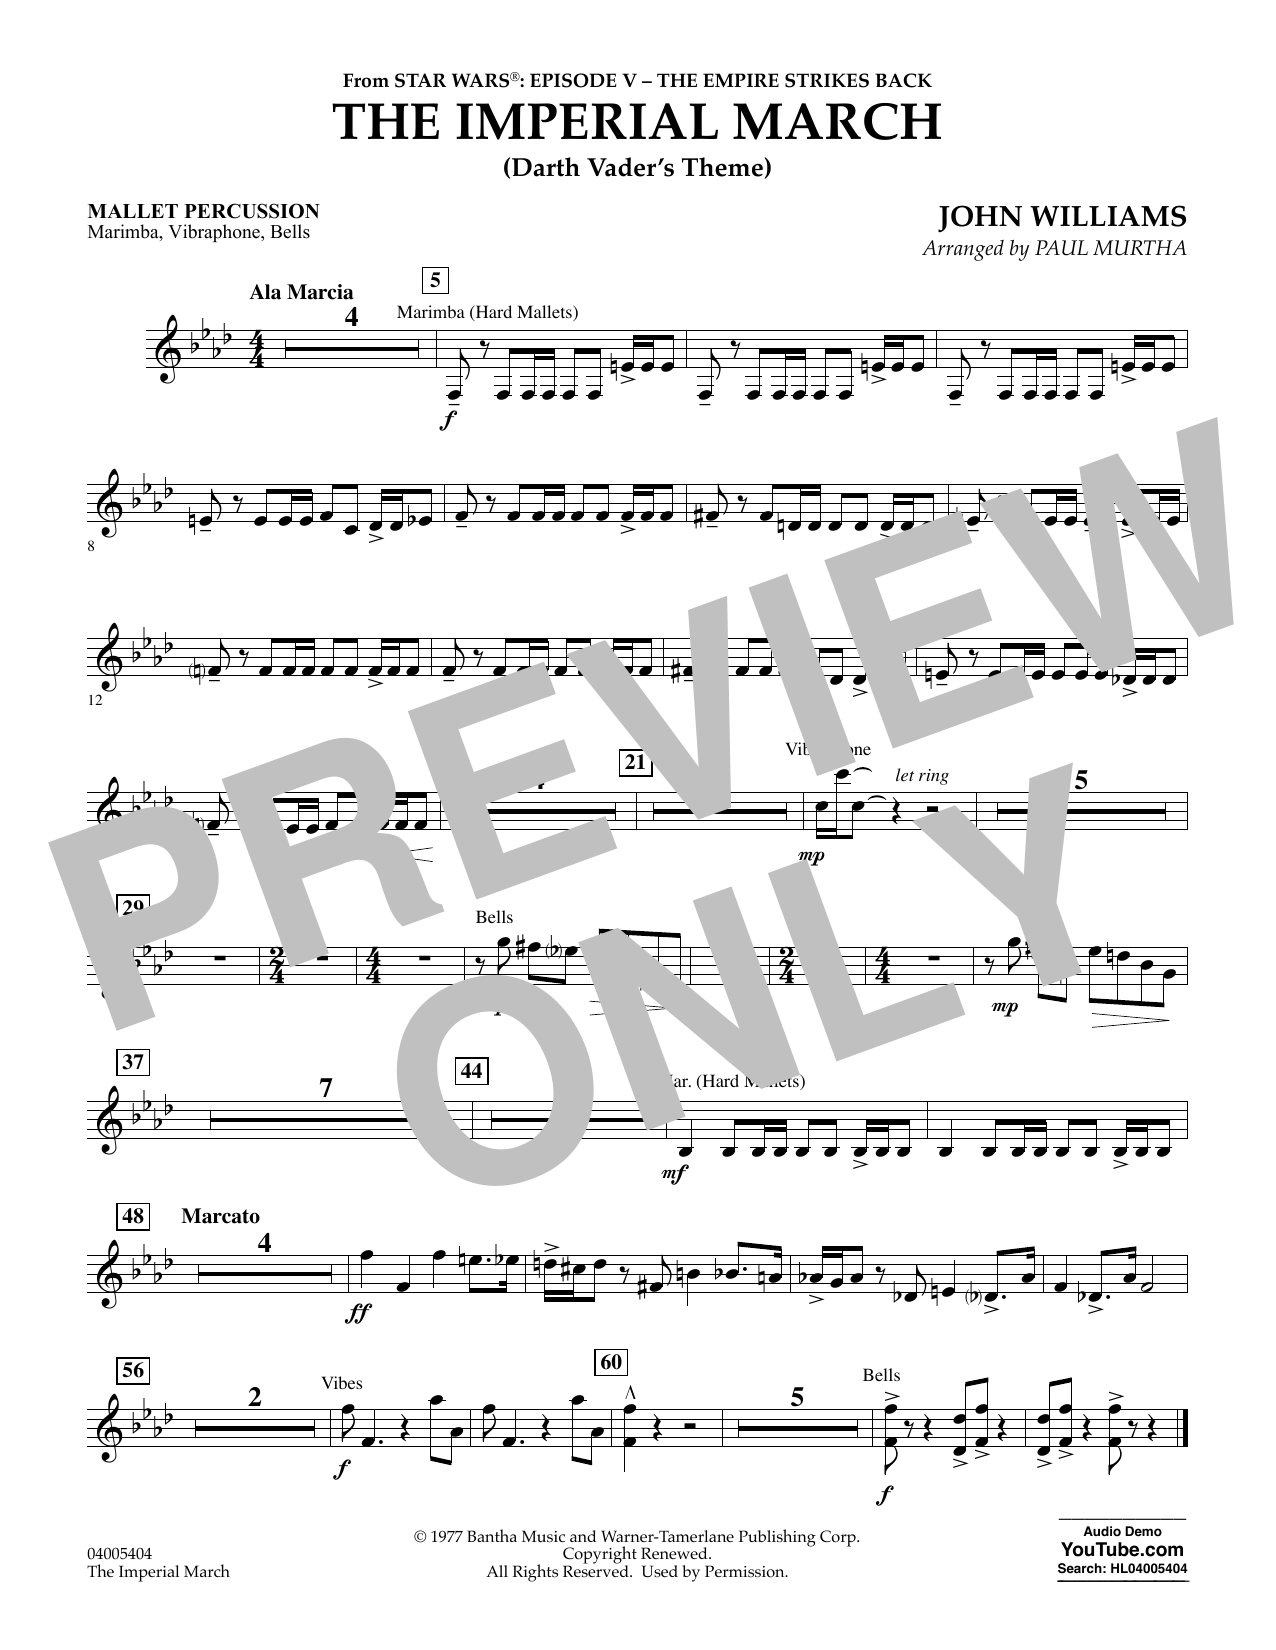 Paul Murtha The Imperial March (Darth Vader's Theme) - Mallet Percussion sheet music notes and chords. Download Printable PDF.